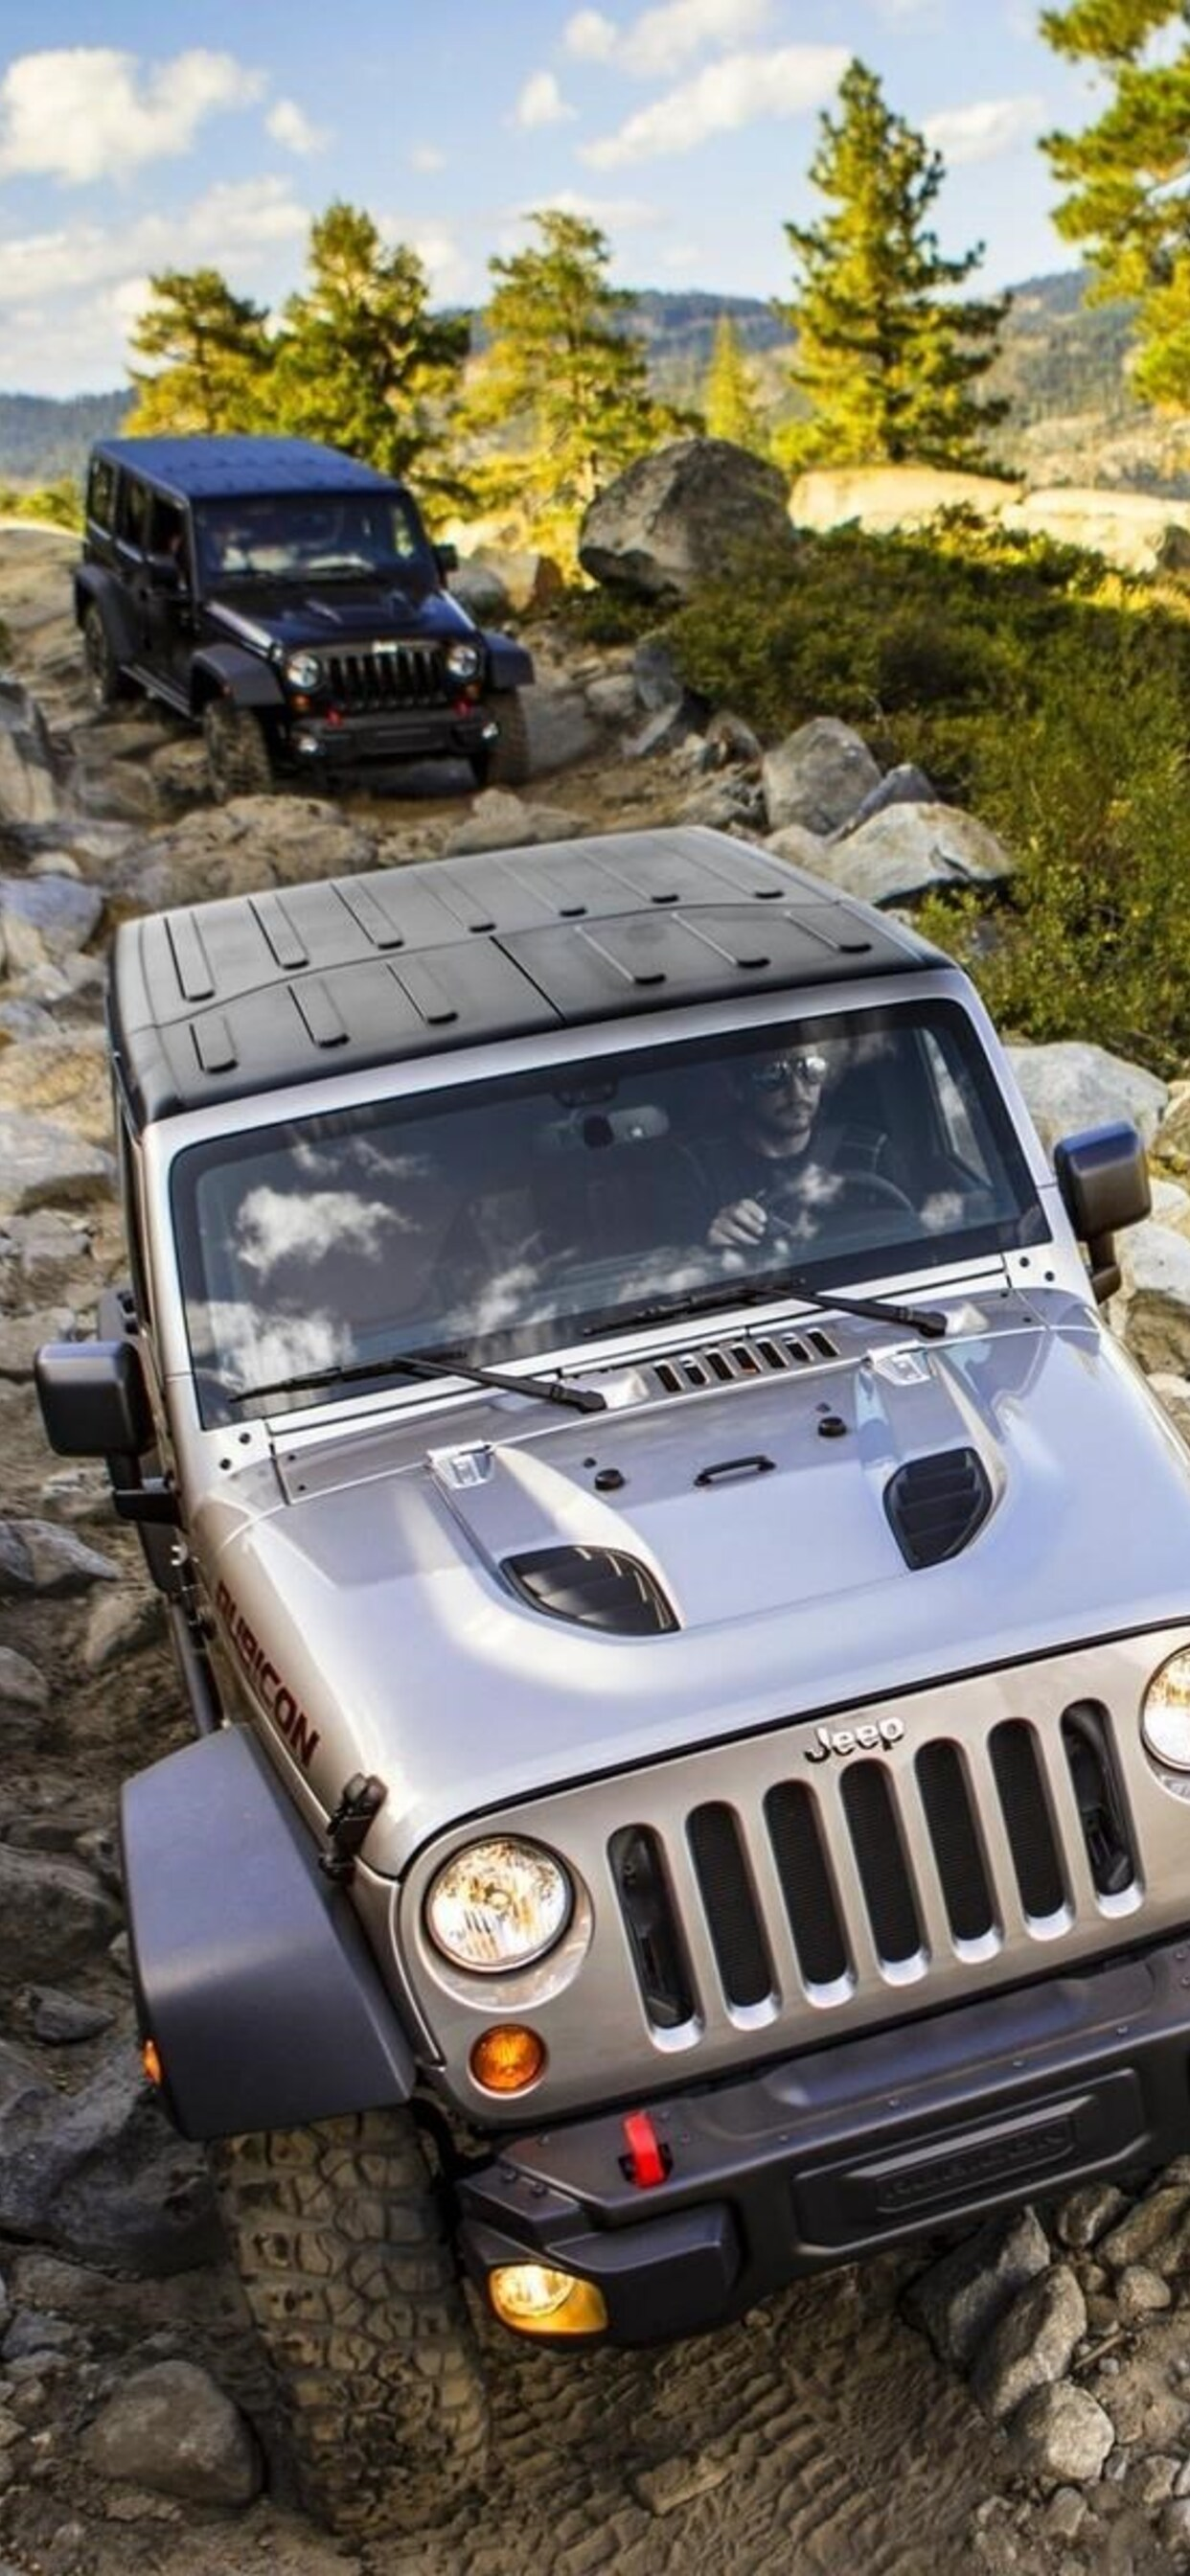 1242x2688 Jeep Wrangler Offroading Iphone Xs Max Hd 4k